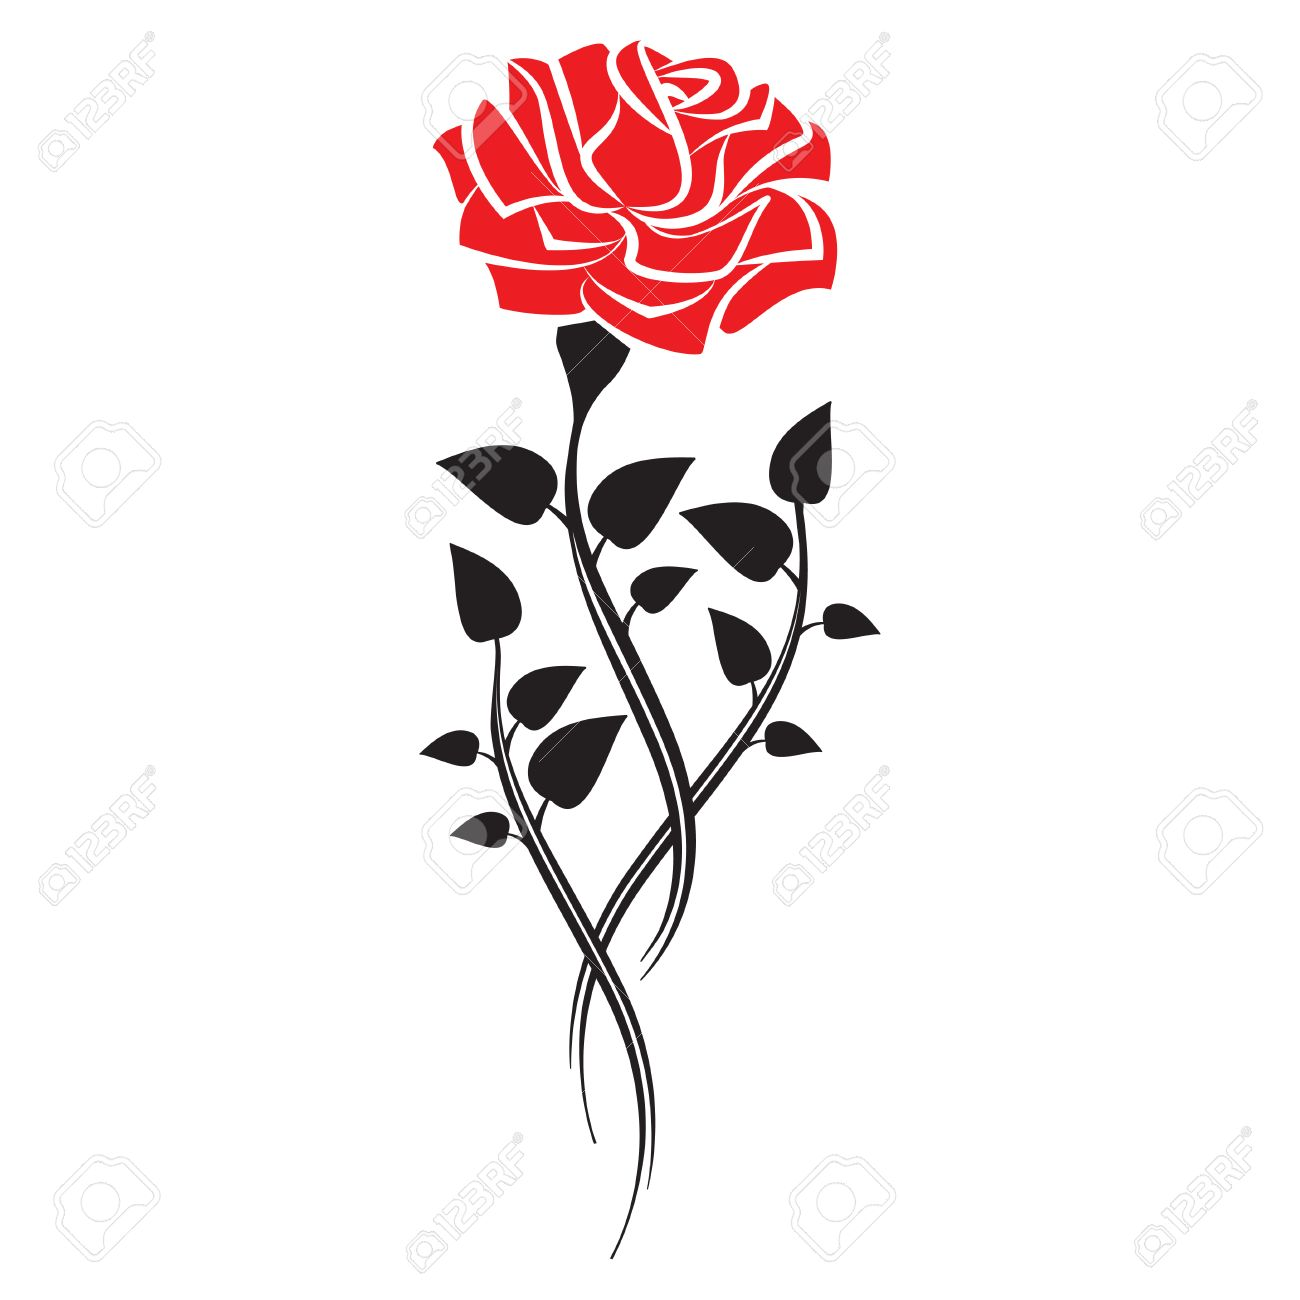 black silhouette of rose with leaves tattoo style rose vector rh 123rf com rose vector tutorial rose vector clip art